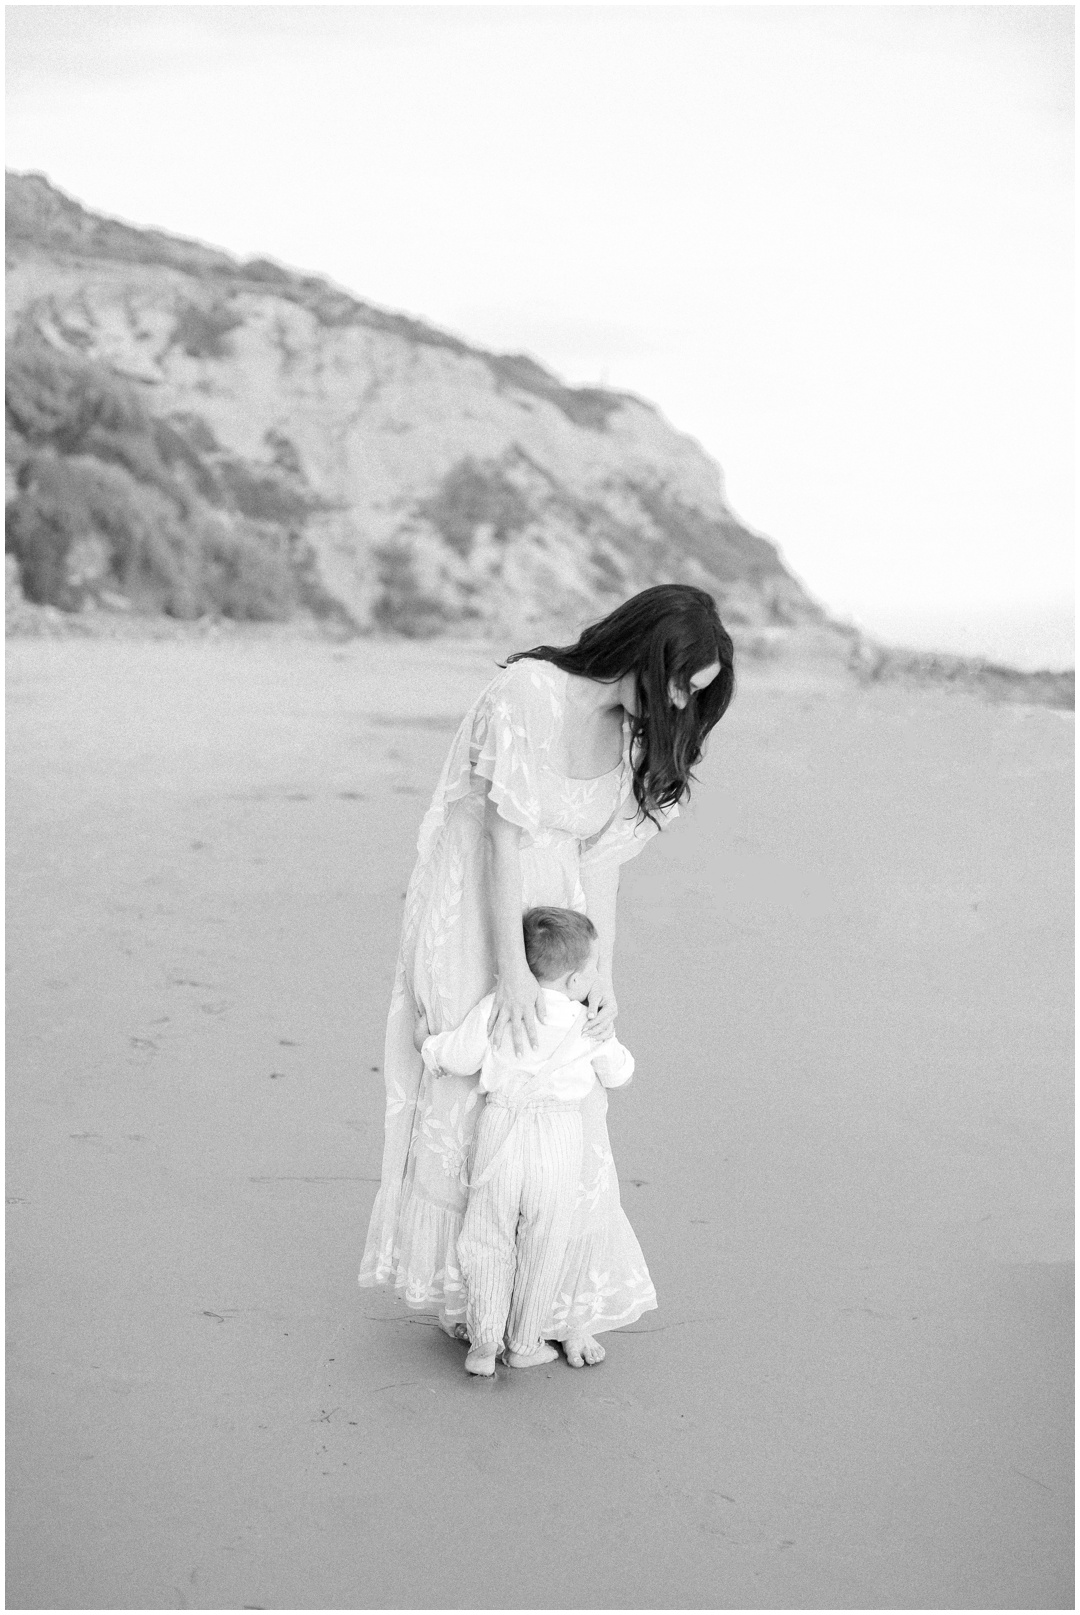 Newport_Beach_Newborn_Light_Airy_Natural_Photographer_Newport_Beach_Photographer_Orange_County_Family_Photographer_Cori_Kleckner_Photography_Huntington_Beach_Photographer_Family_OC_Newborn_Danielle_Lawley_Parker_Maternity_Family_Jordan_Lawley_3372.jpg